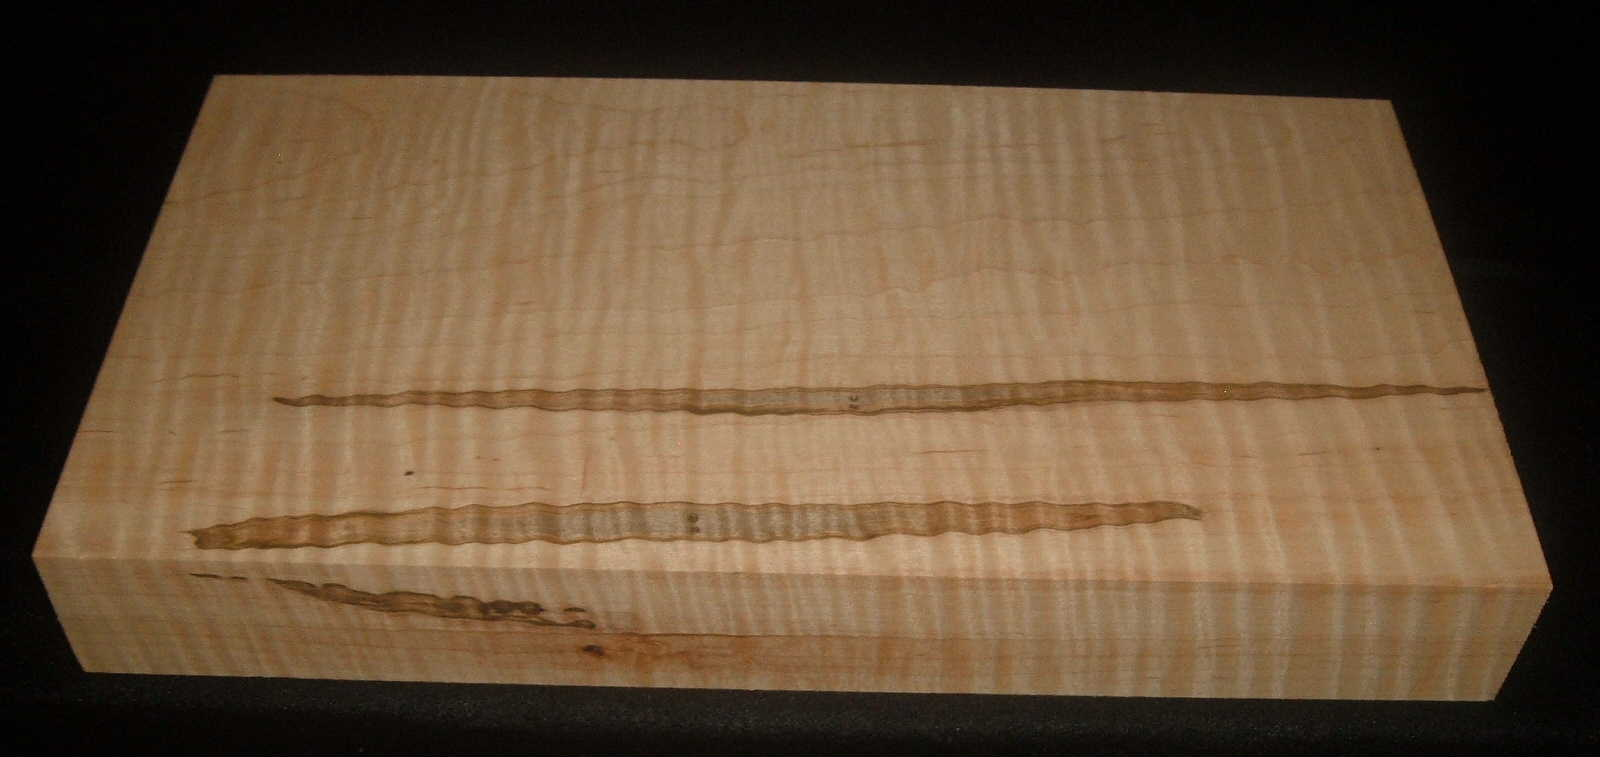 AMS-1634, 1-7/8x5-1/2x19-1/2, Curly Tiger Ambrosia Wormy Maple